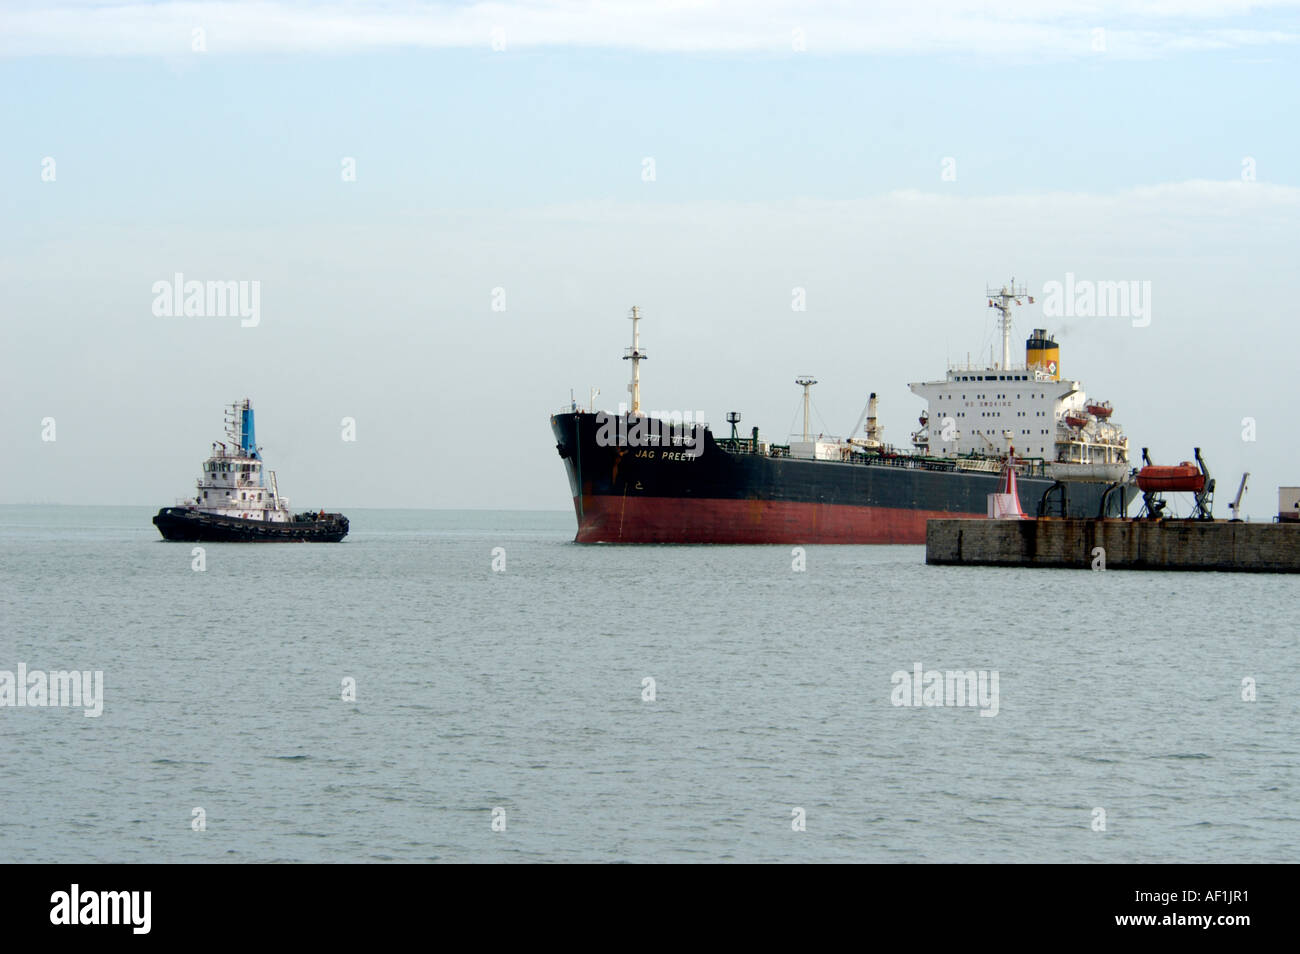 PILOT TUG BOAT LEADING CARGO VESSEL INTO CHENNAI PORT TAMIL